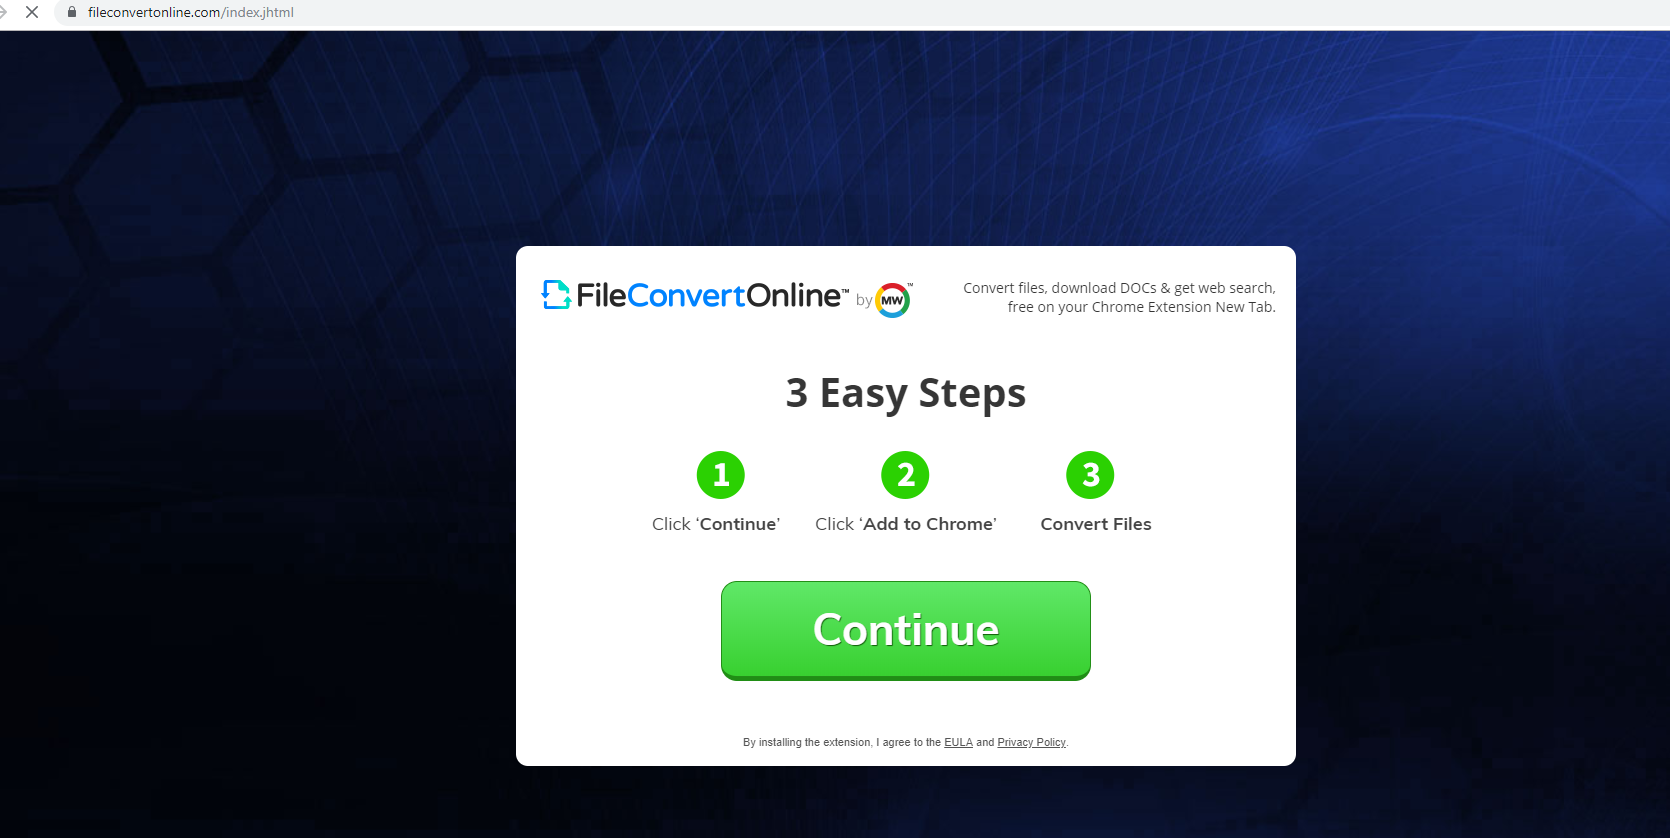 How to remove FileConvertOnline